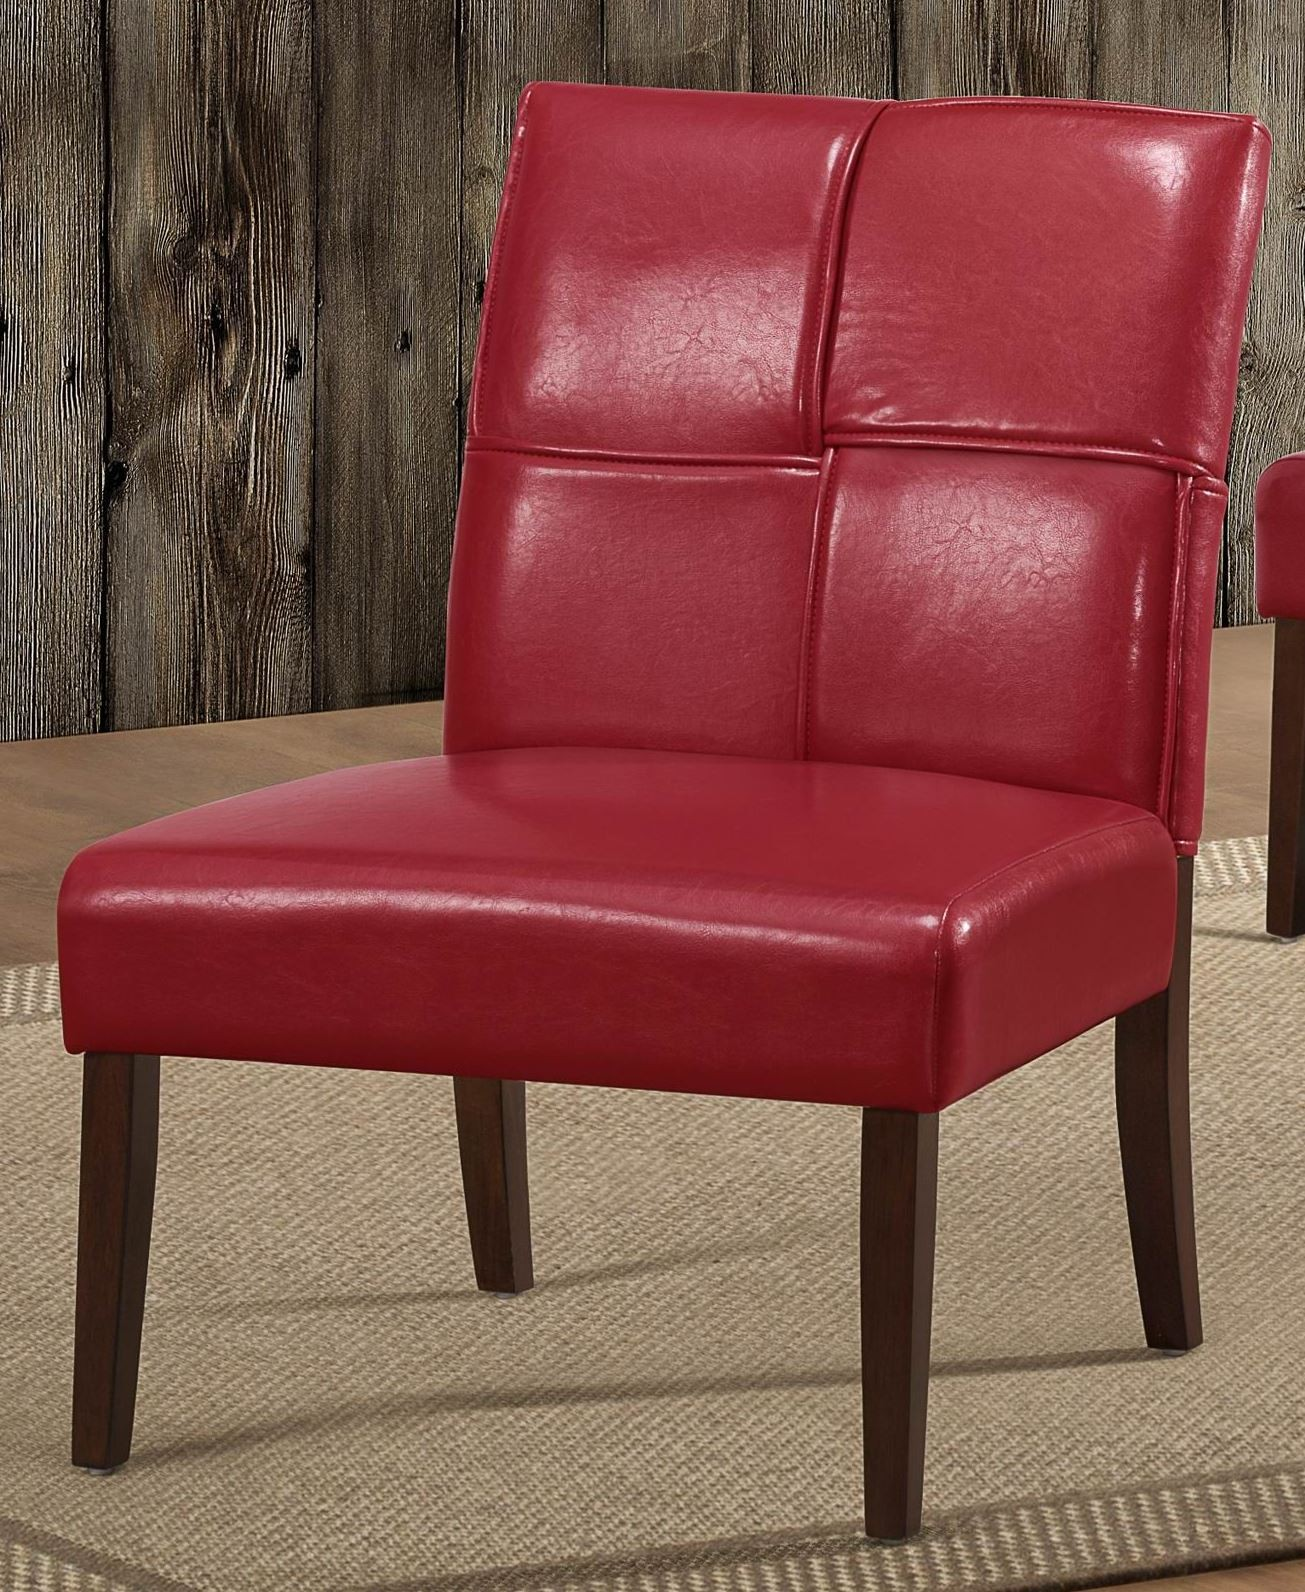 Red Accent Chair Islated: Oriana Red Accent Chair From Homelegance (1215RDS